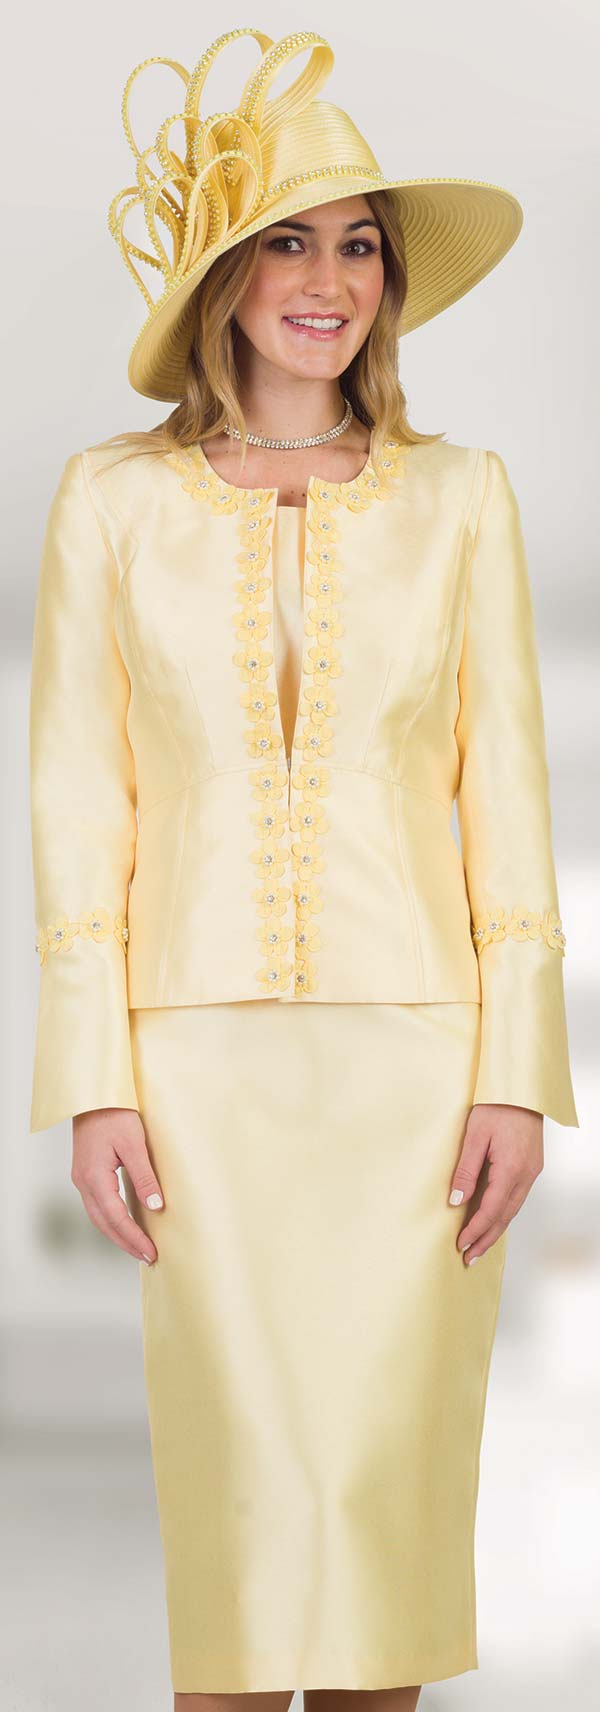 Lily and Taylor 4545 - Silky Twill Womens Church Suit With Flower Applique Trims